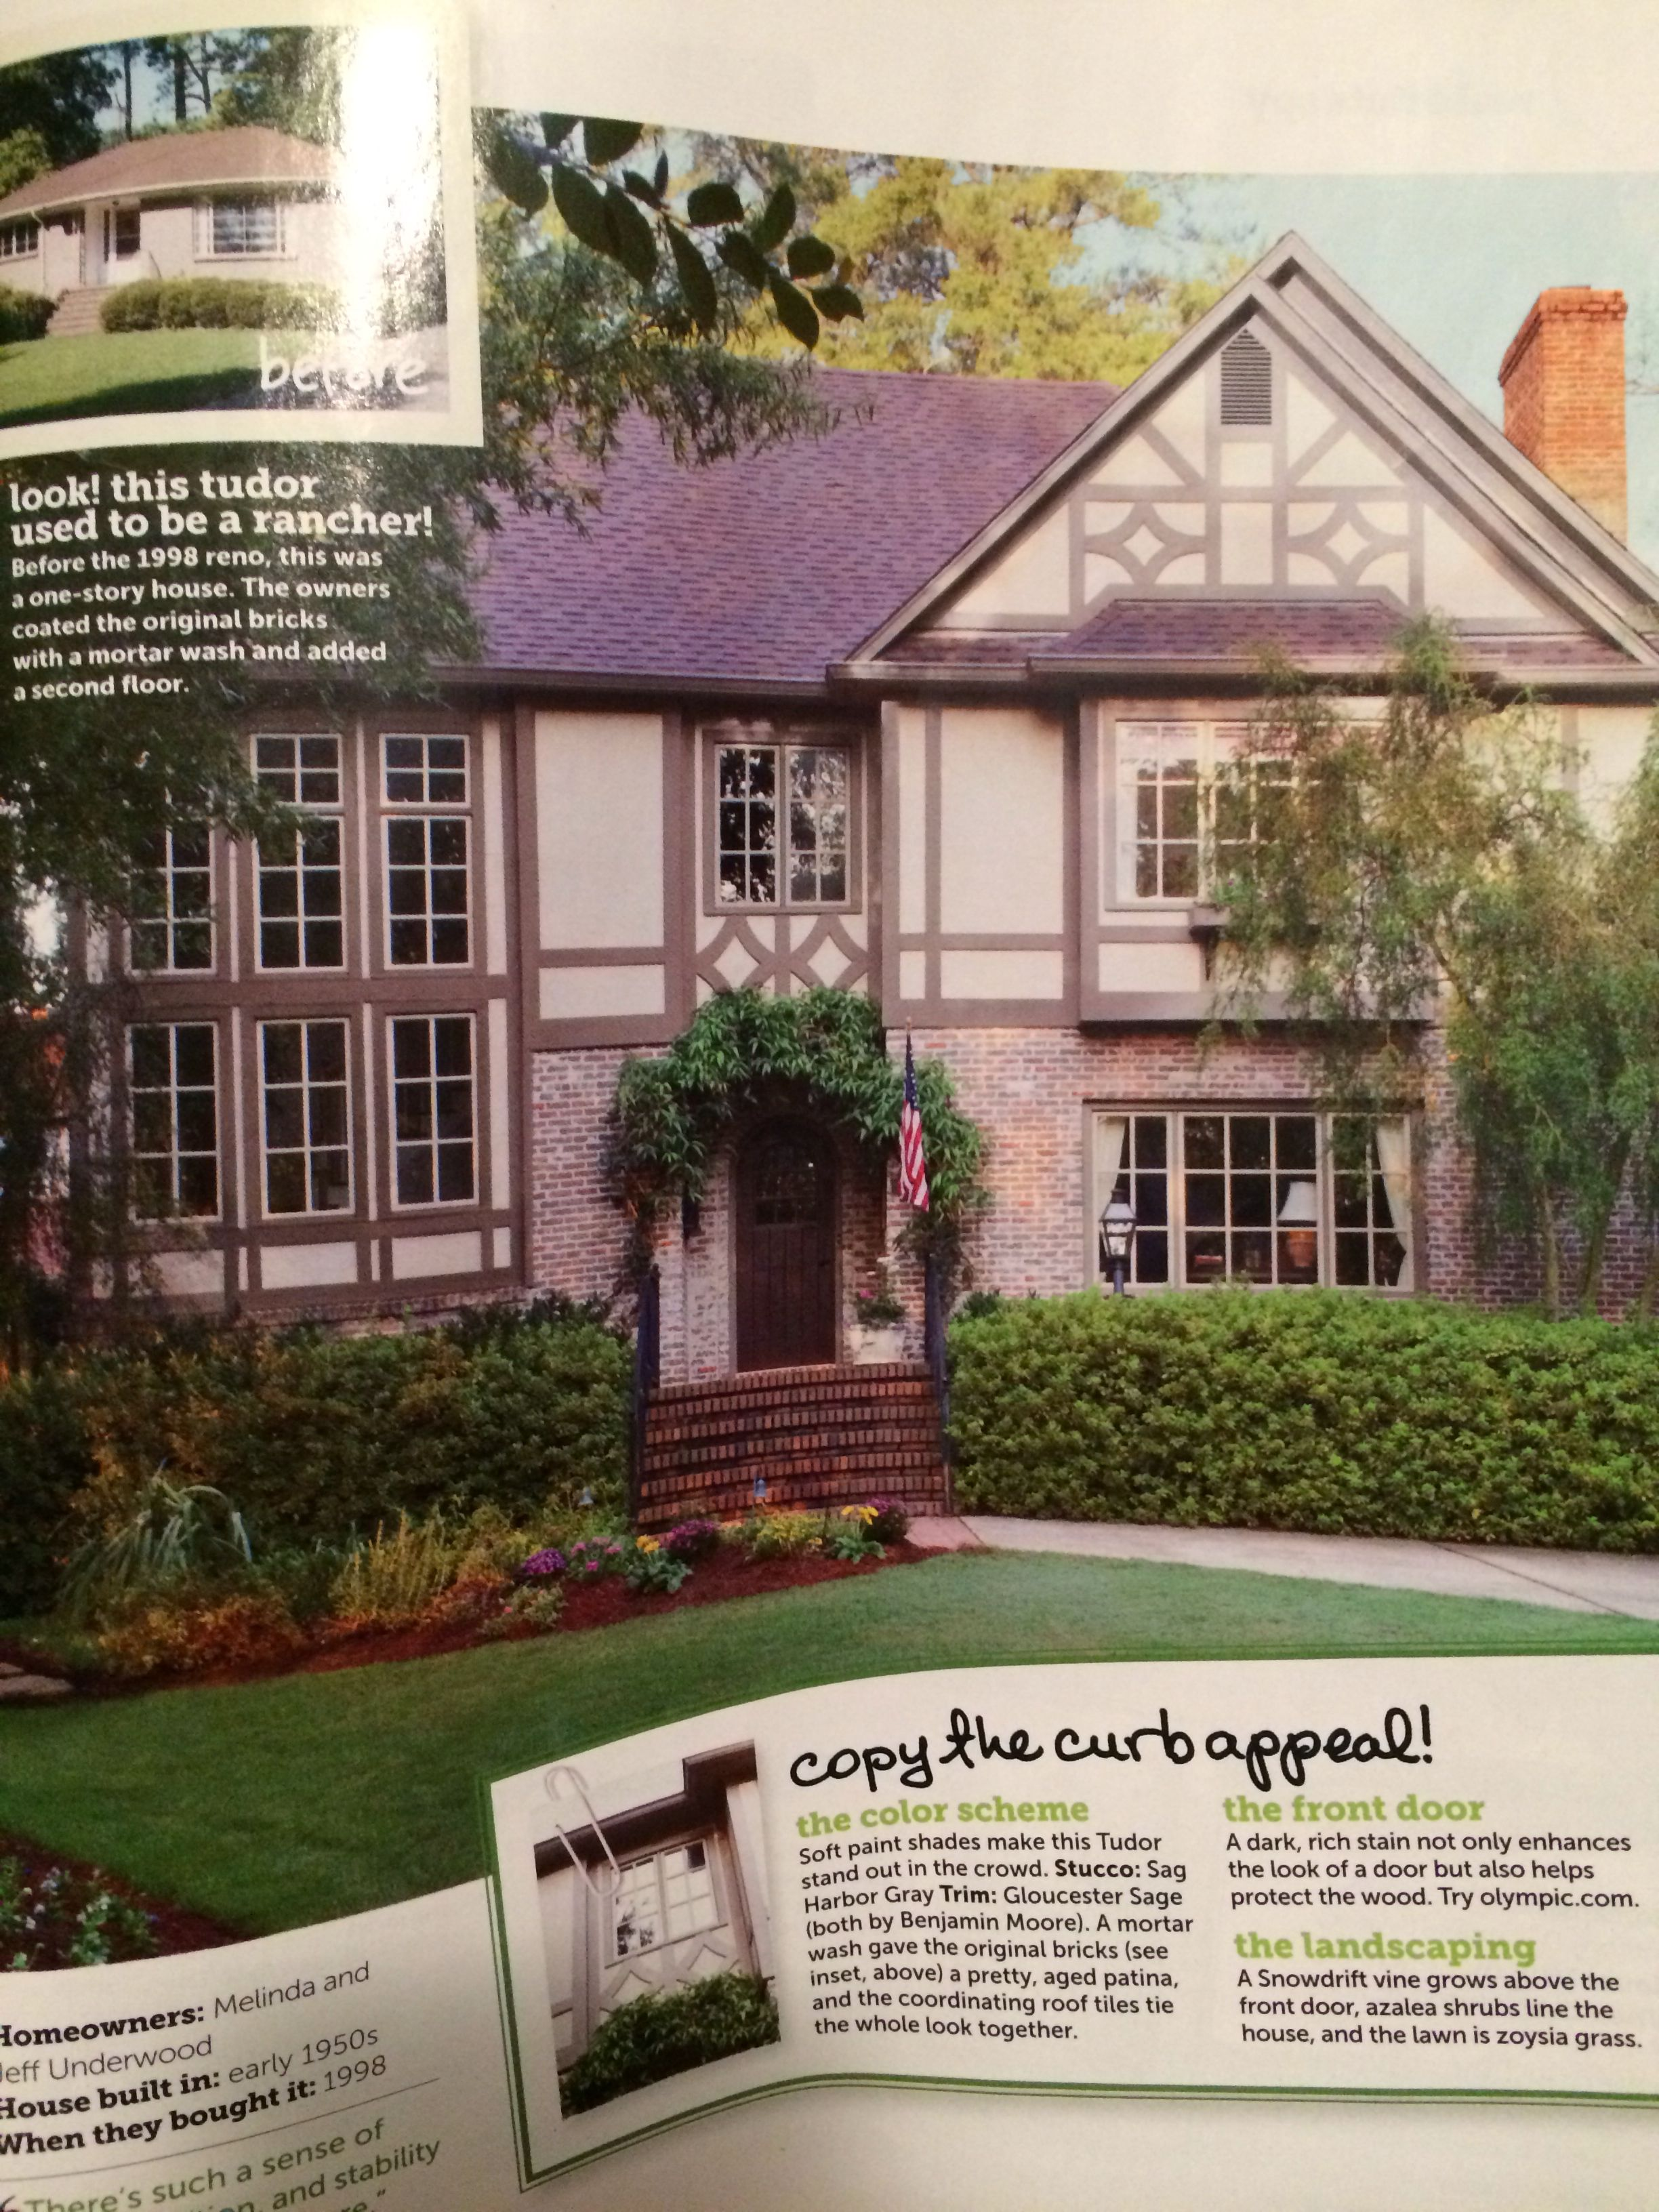 Stucco is sage harbor gray by bm trim is gloucester sage by benjamin moore and the brick was given a mortar wash